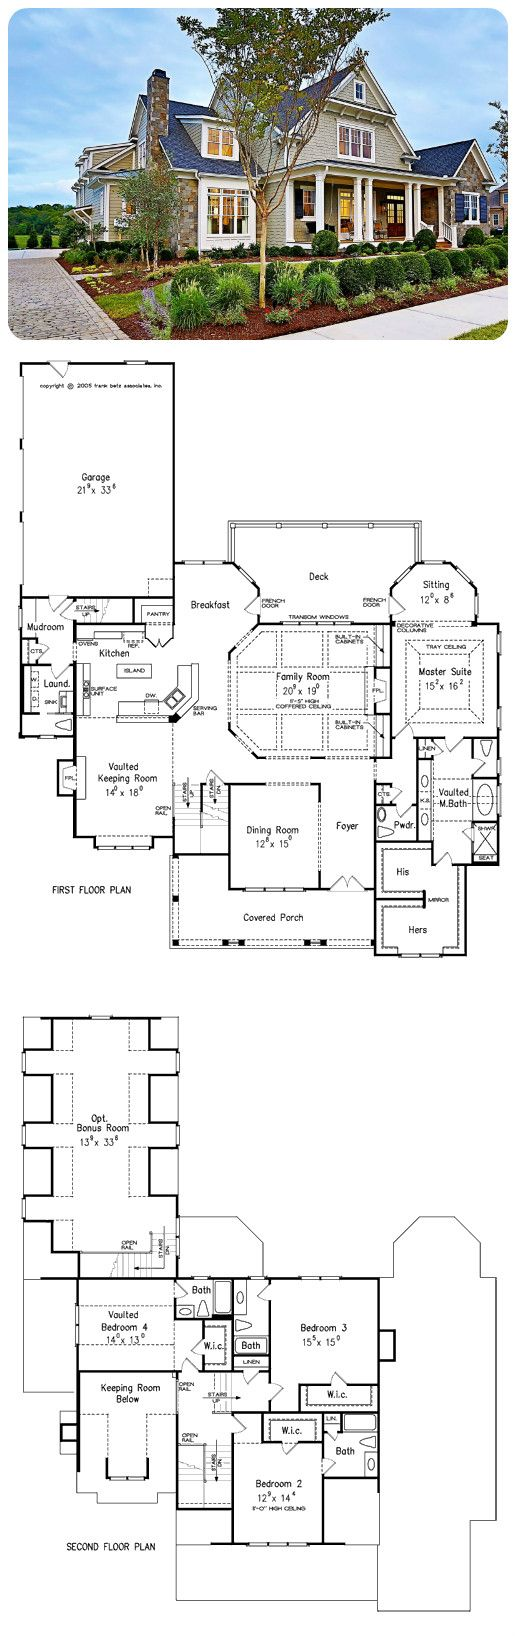 best 25 home floor plans ideas on pinterest house floor plans northfield manor a frankbetz plan spacious luxury living is the hallmark of